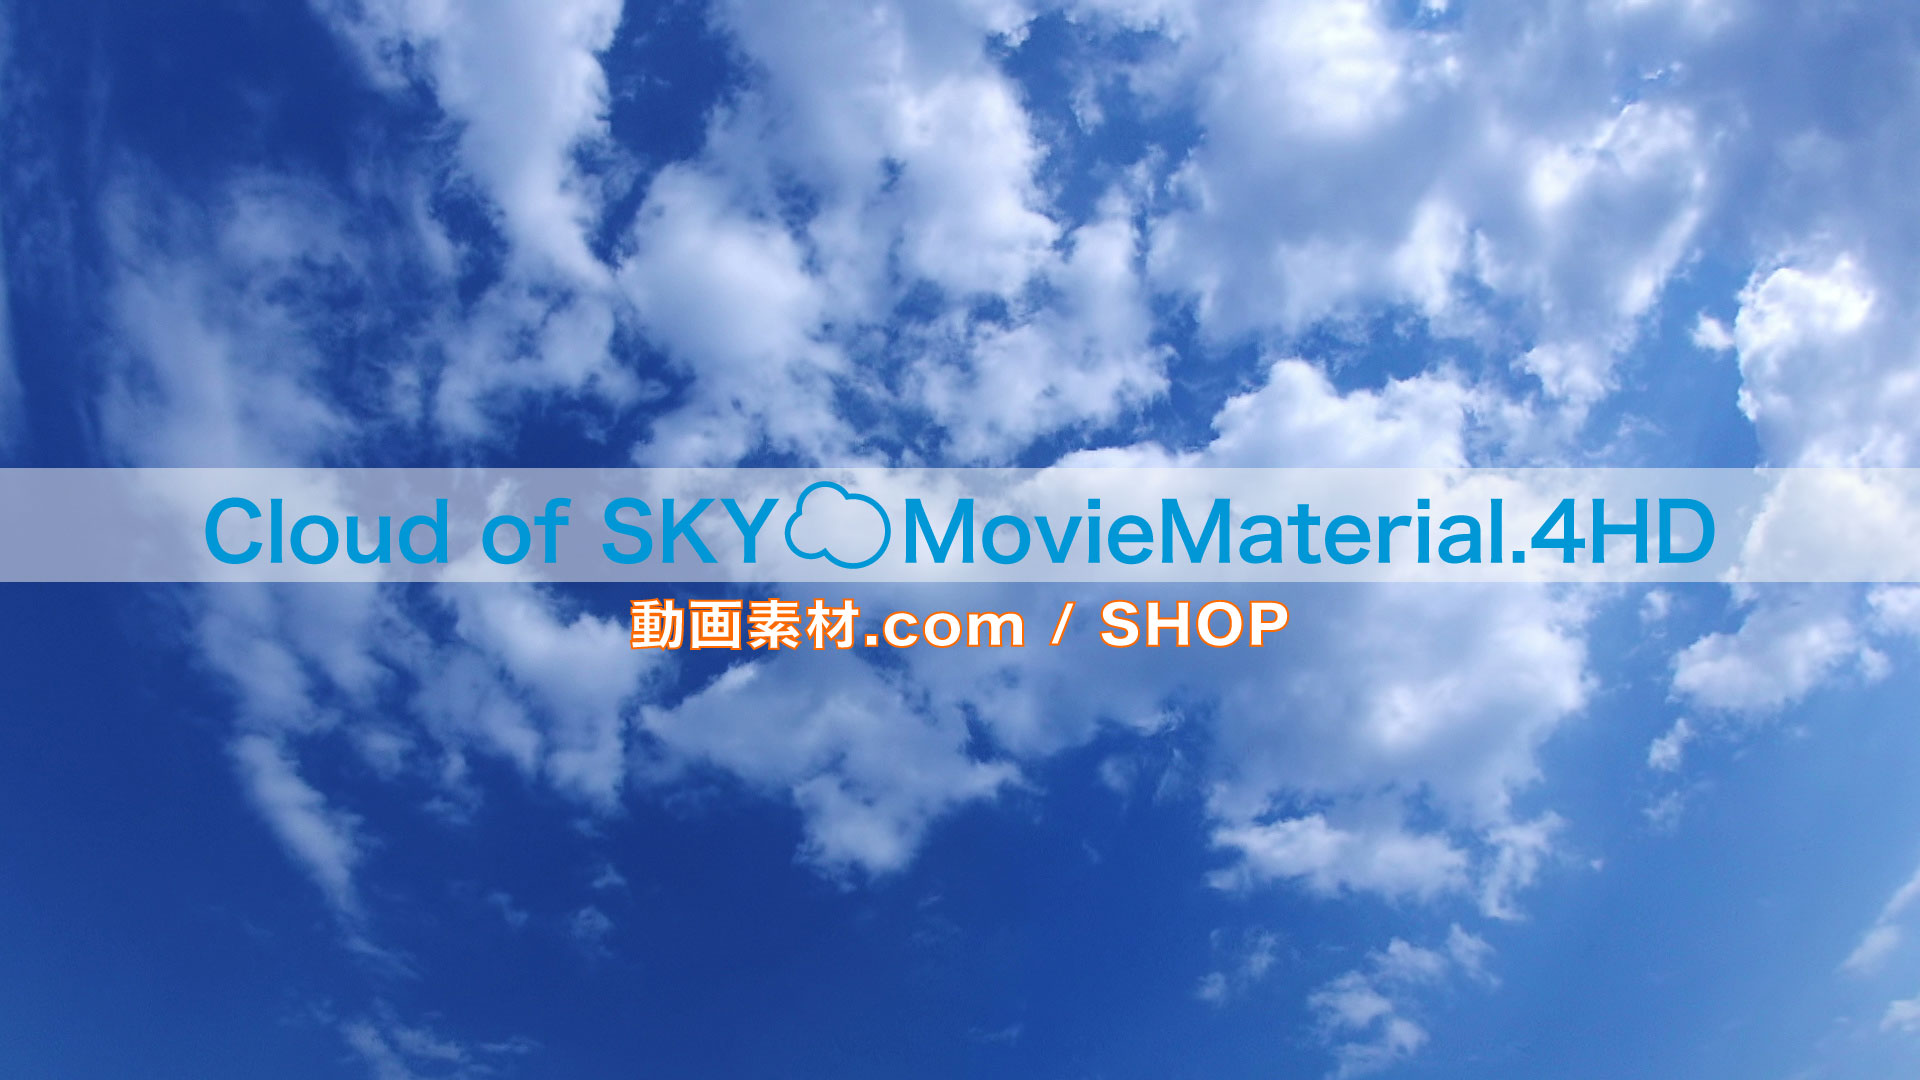 【Cloud of SKY MovieMaterial.4HD】空と雲(月)のフルハイビジョン1920×1080p動画素材集 image3